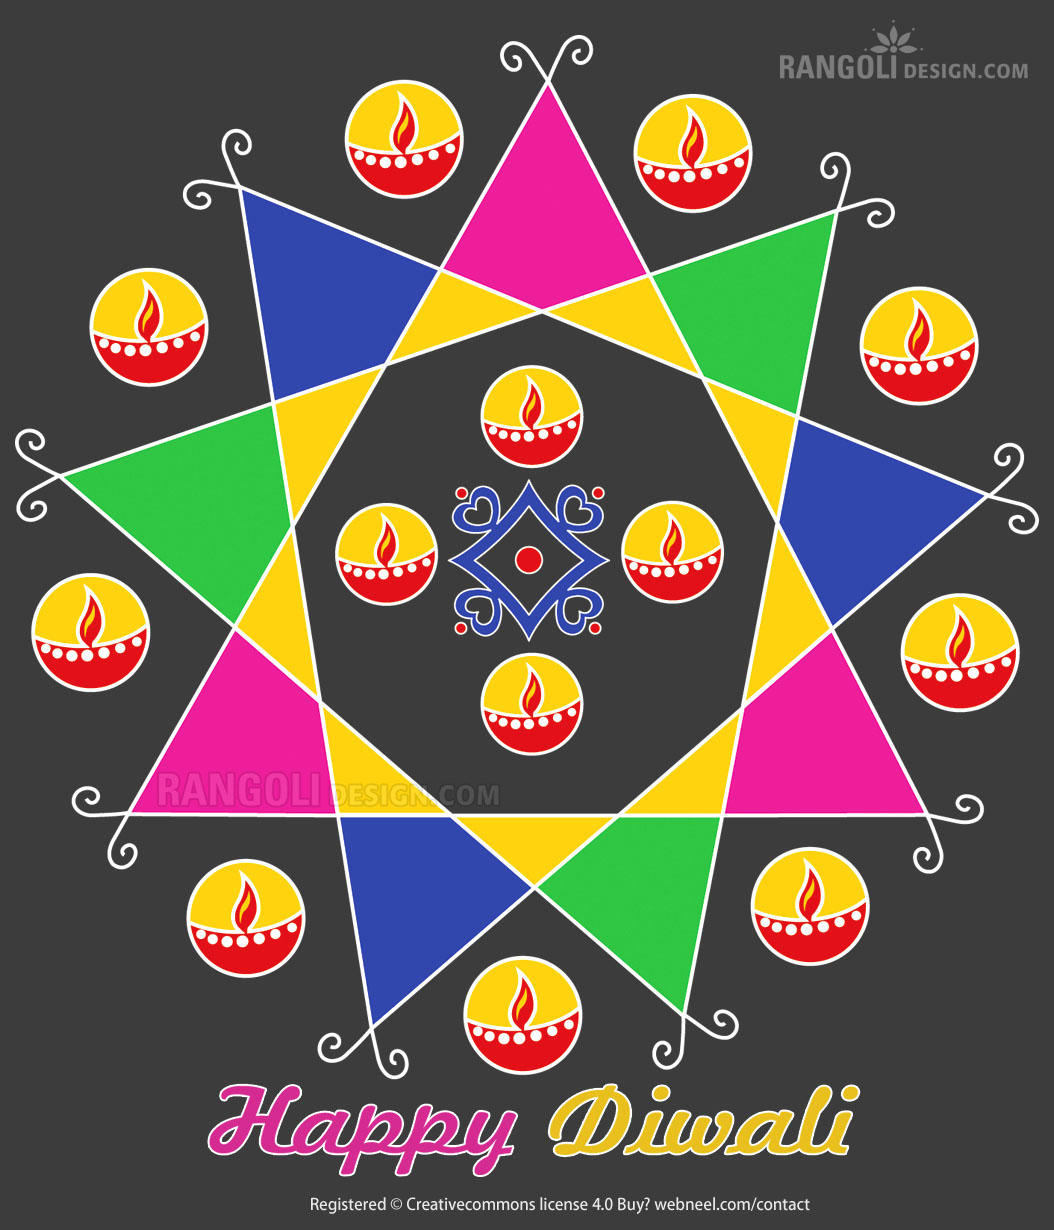 rangoli designs wallpaper stars - photo #32